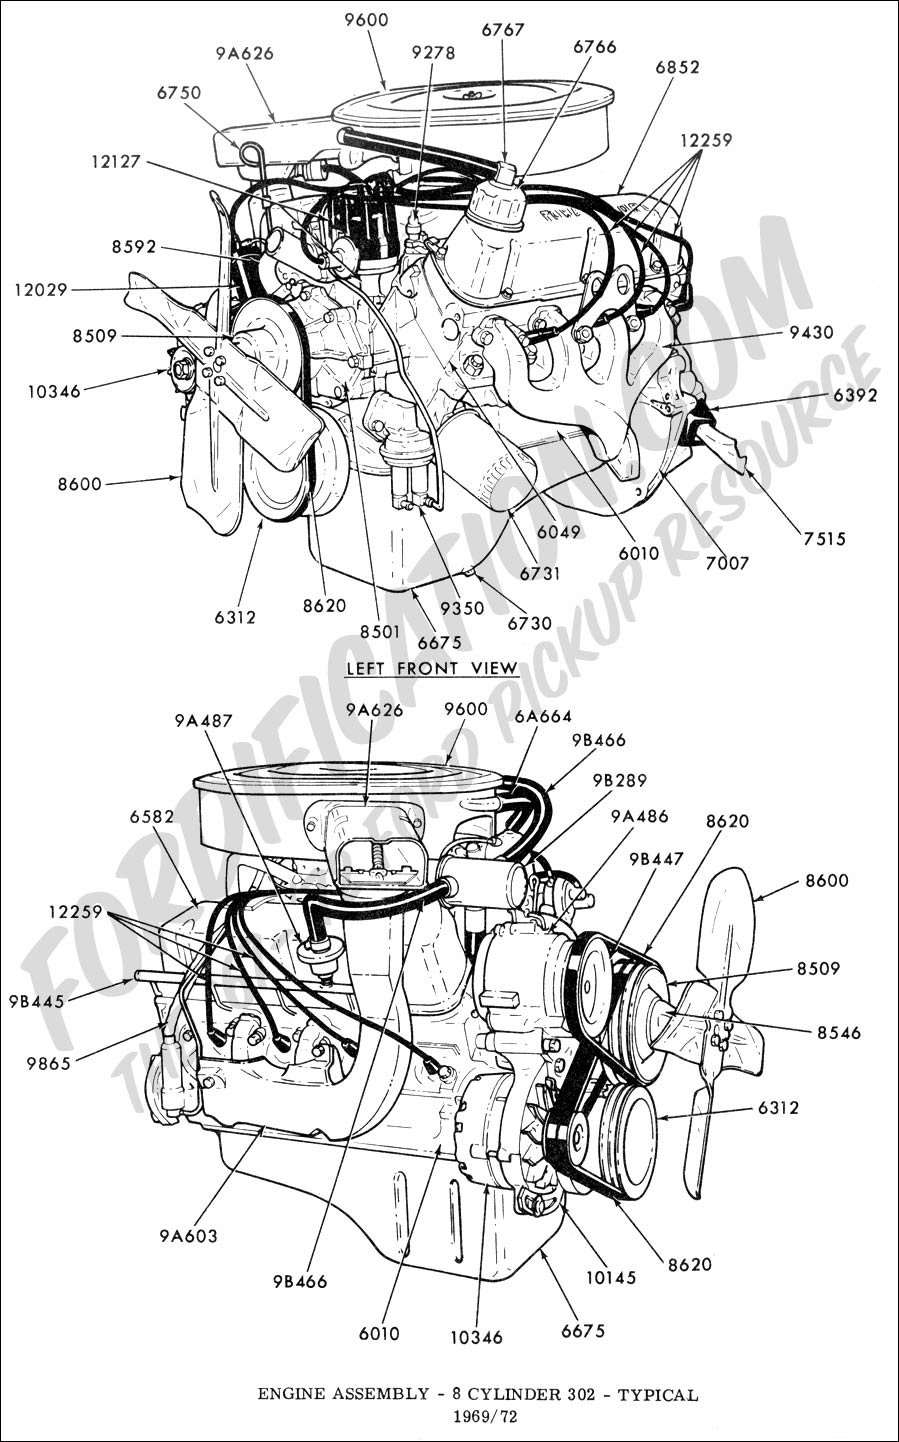 1979 ford f150 motor diagram wiring diagram 1979 ford f150 ignition switch wiring diagram 1976 ford wiring diagram wiring diagram